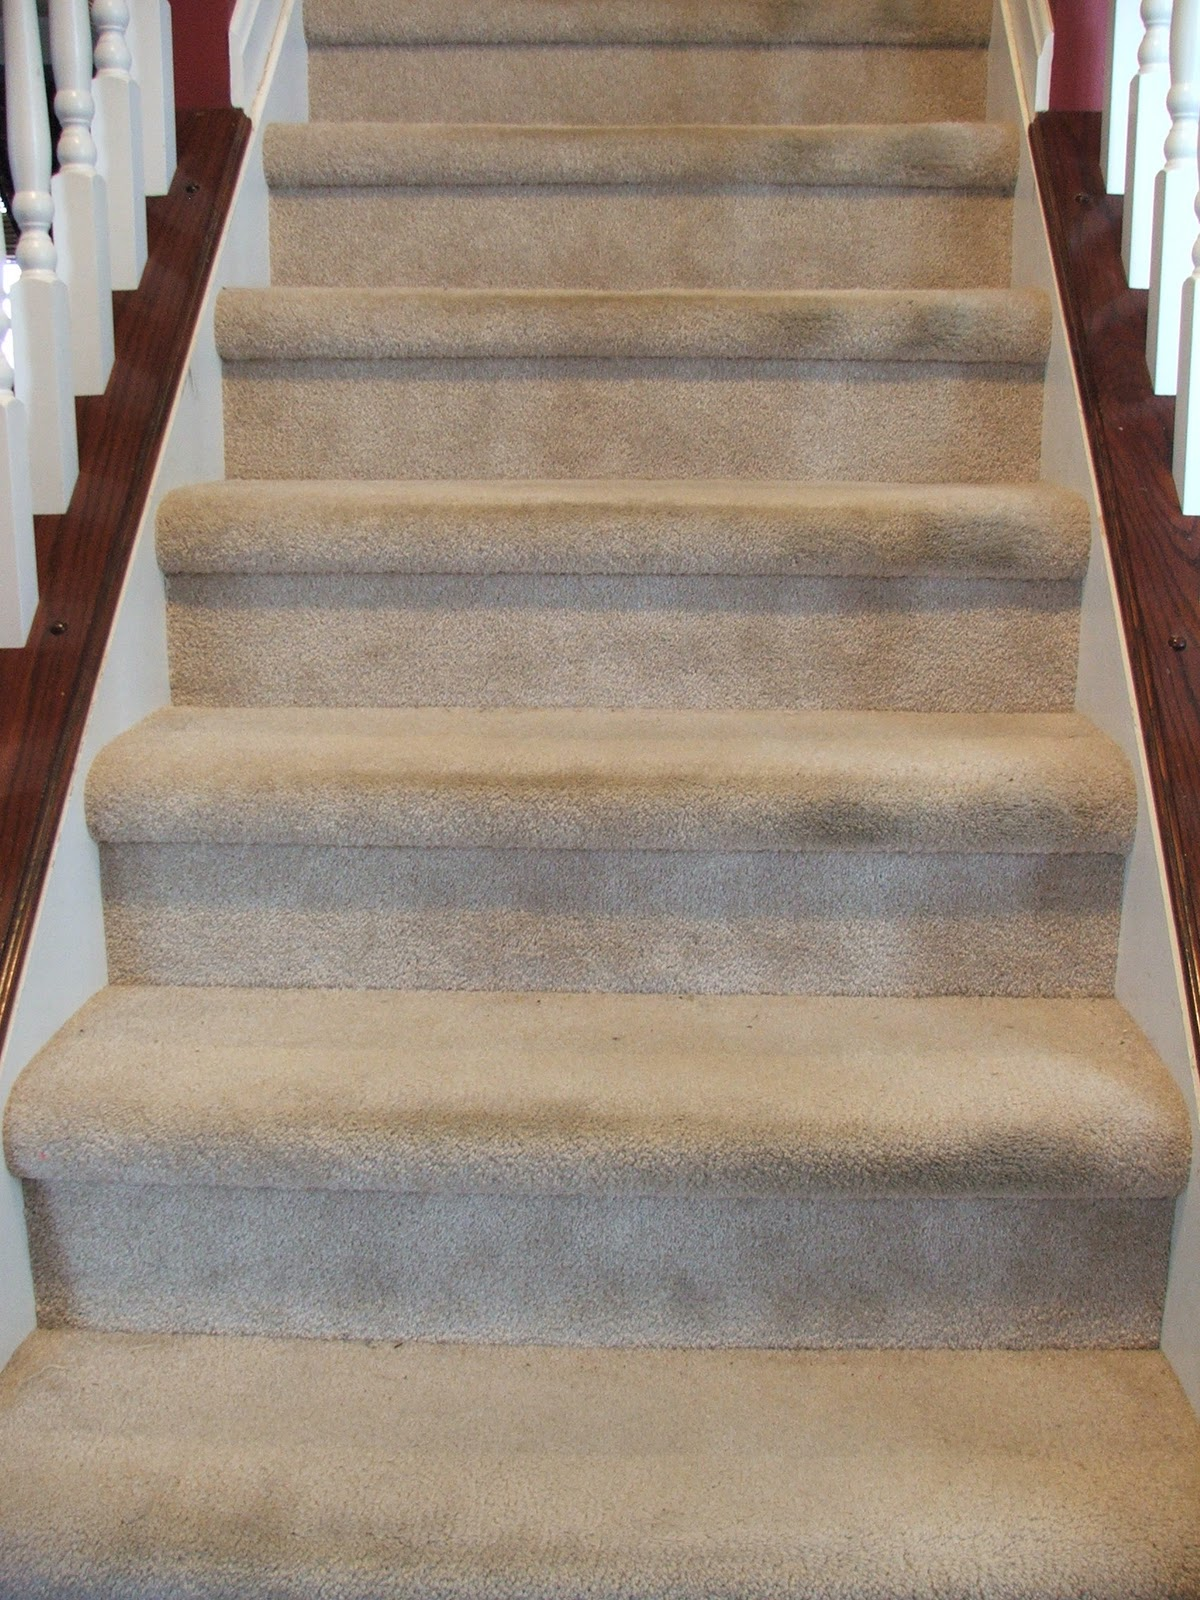 40 Get Rid Of Those Ugly Carpeted Stairs With This Tutorial, By Cleverly  Inspired,